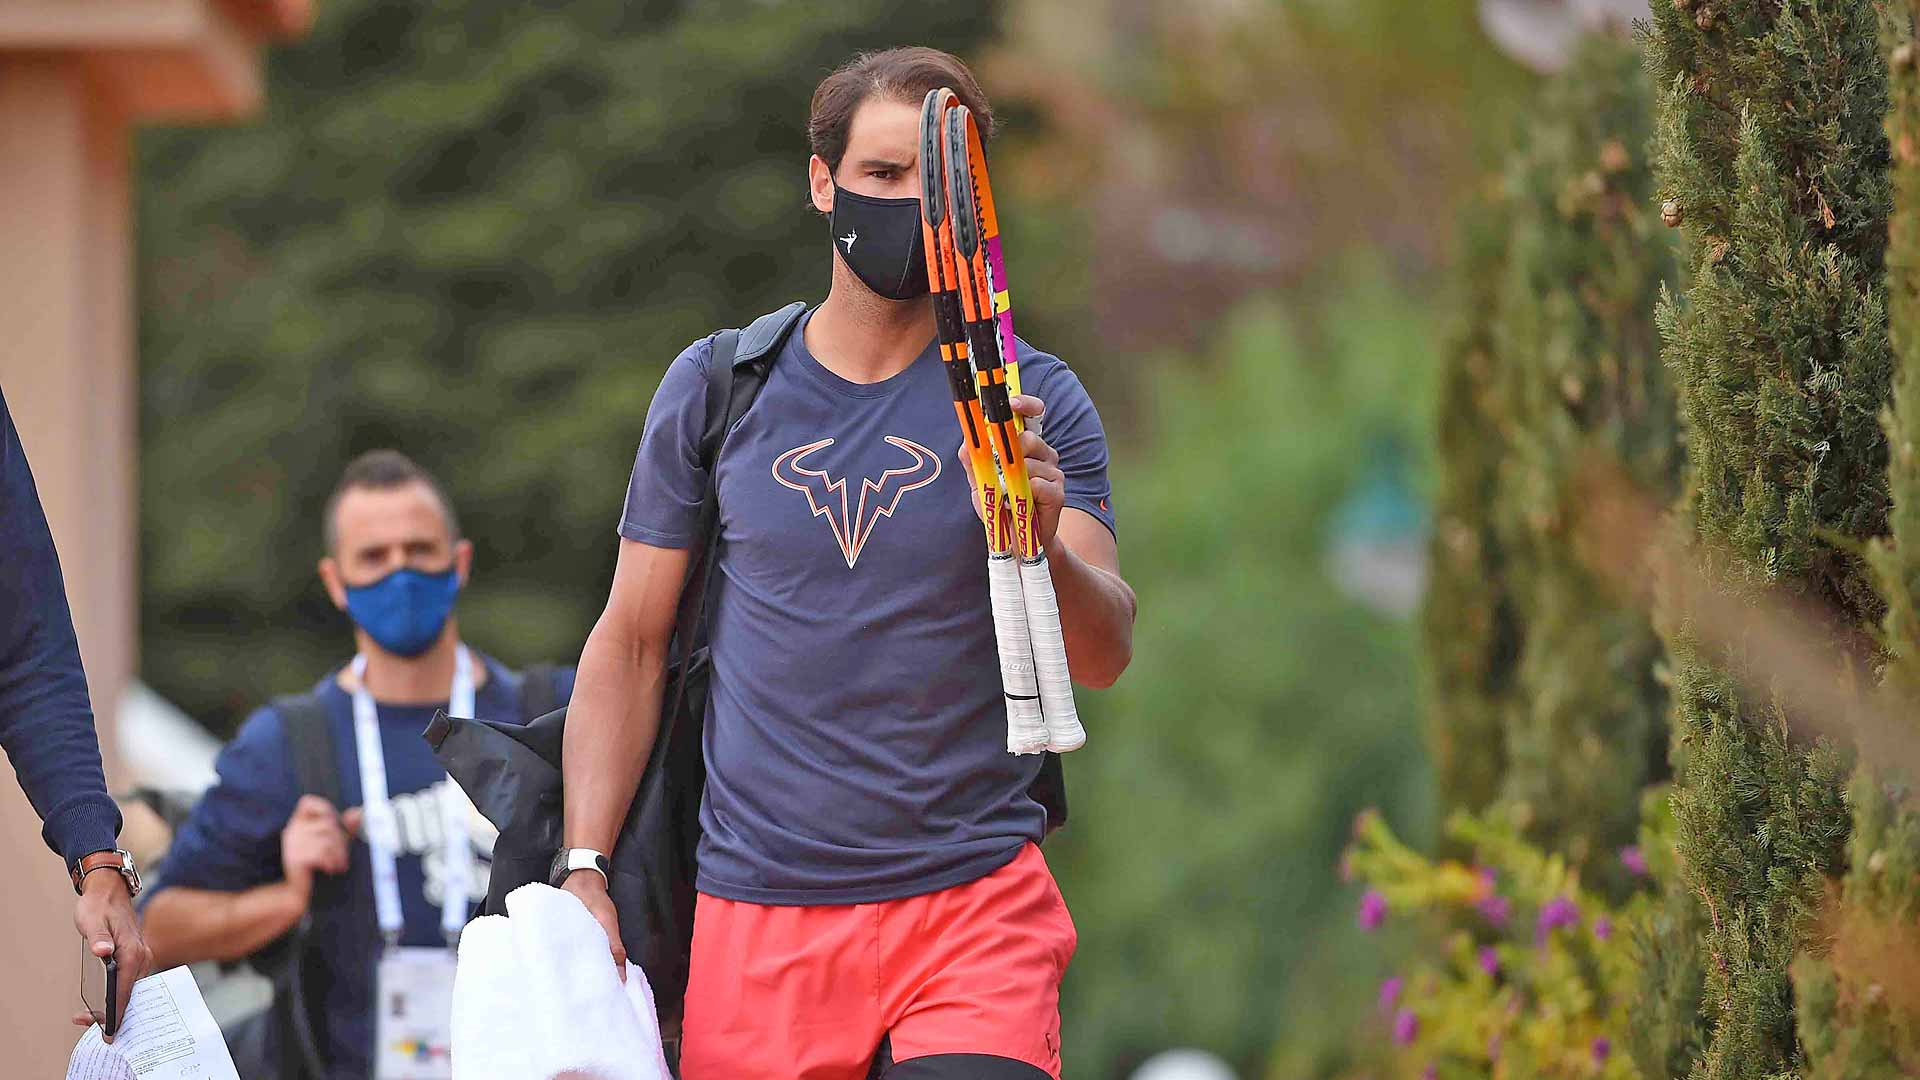 A Bad Omen For Rafael Nadal's Opponents: 'I Am Confident' - ATP Tour